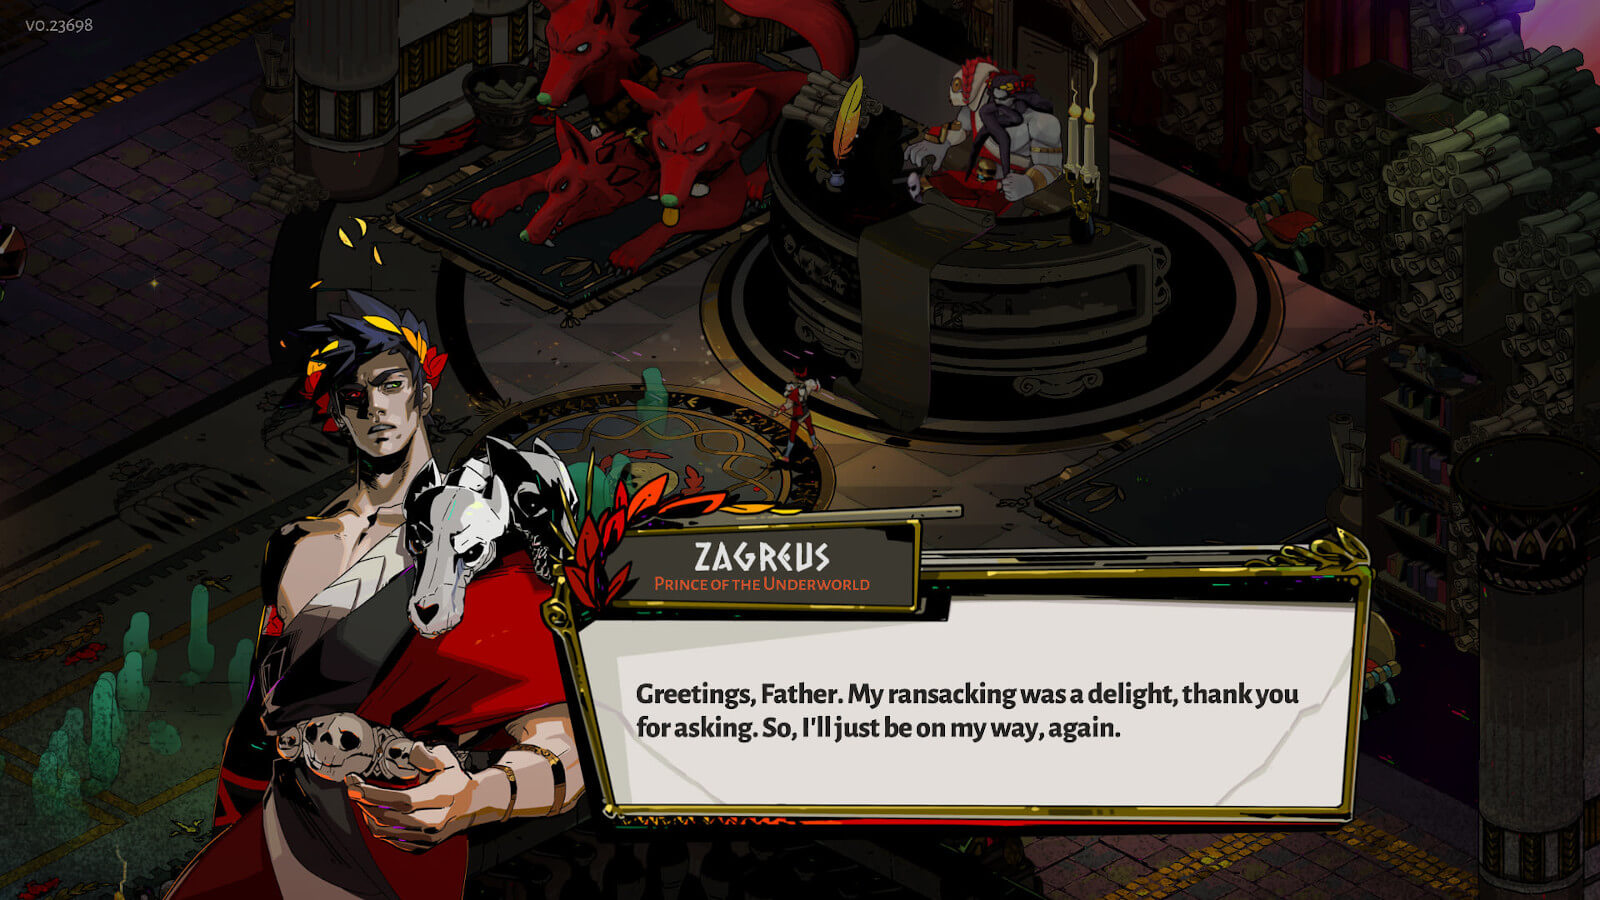 Screenshot of the character Zagreus speaking in the game Hades.